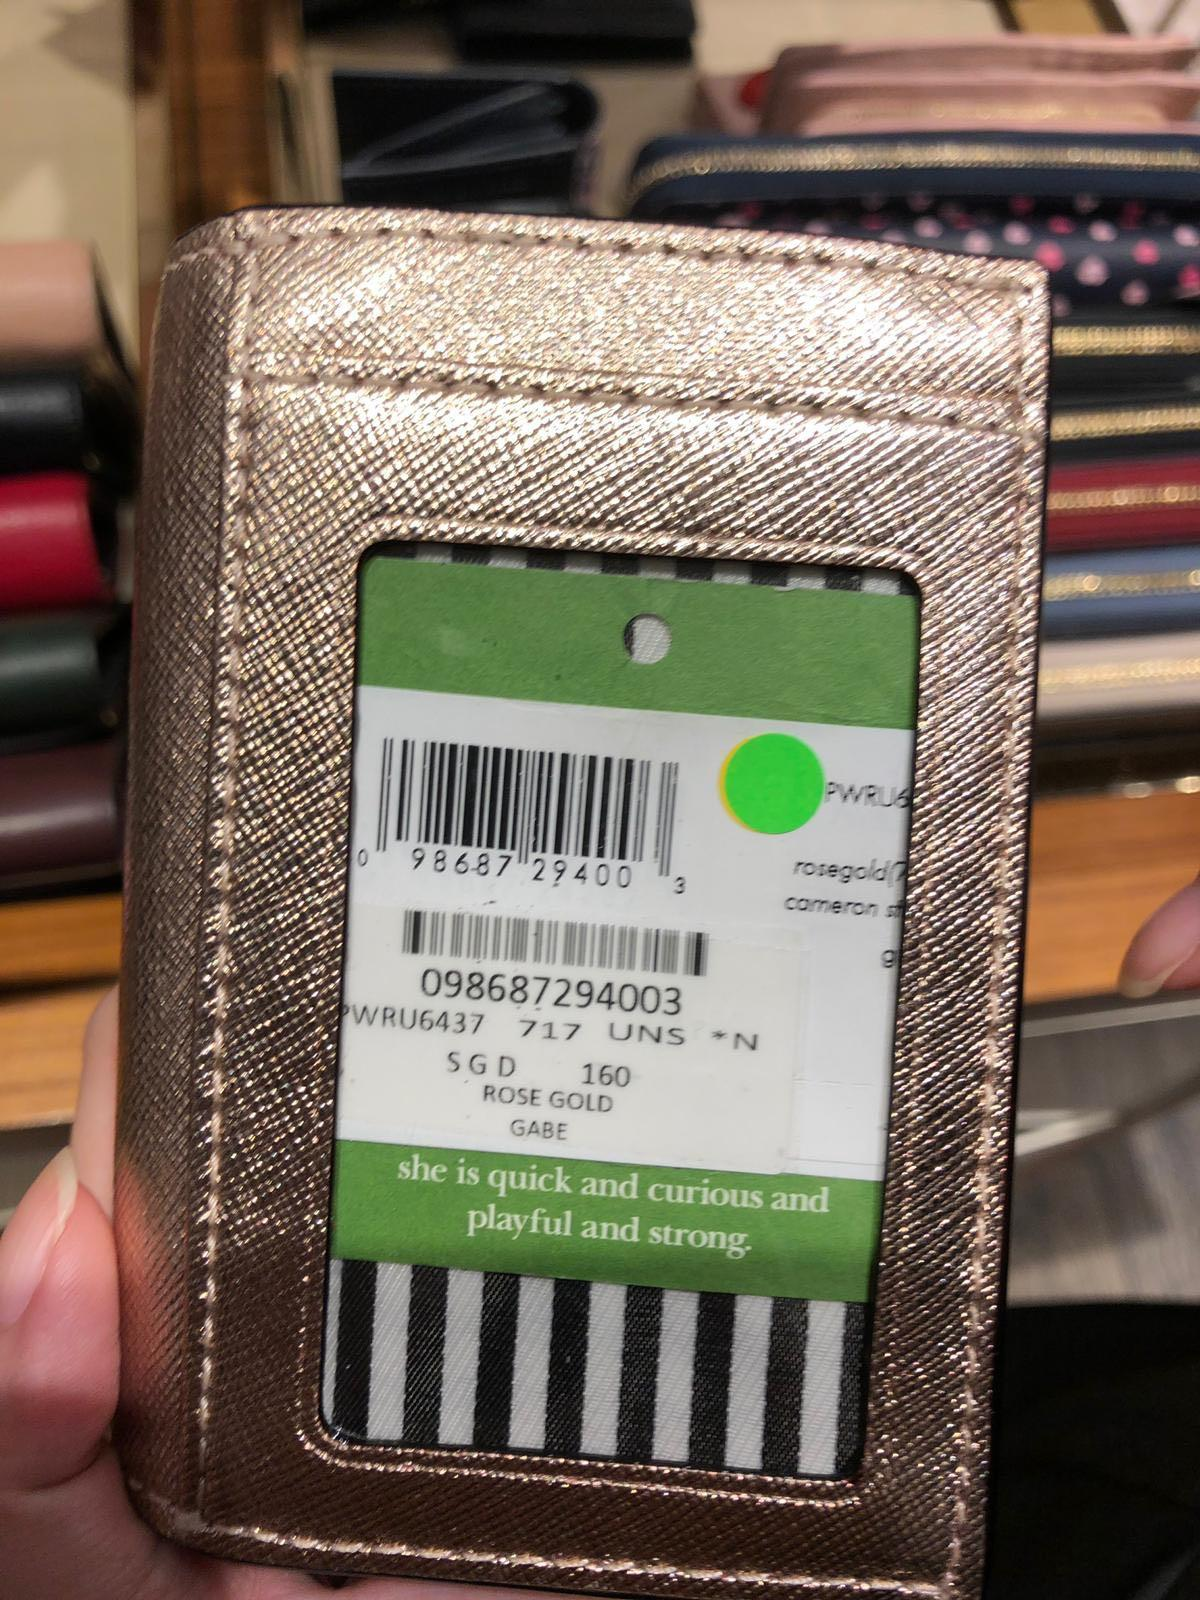 Kate Spade compact wallet in Rose Gold